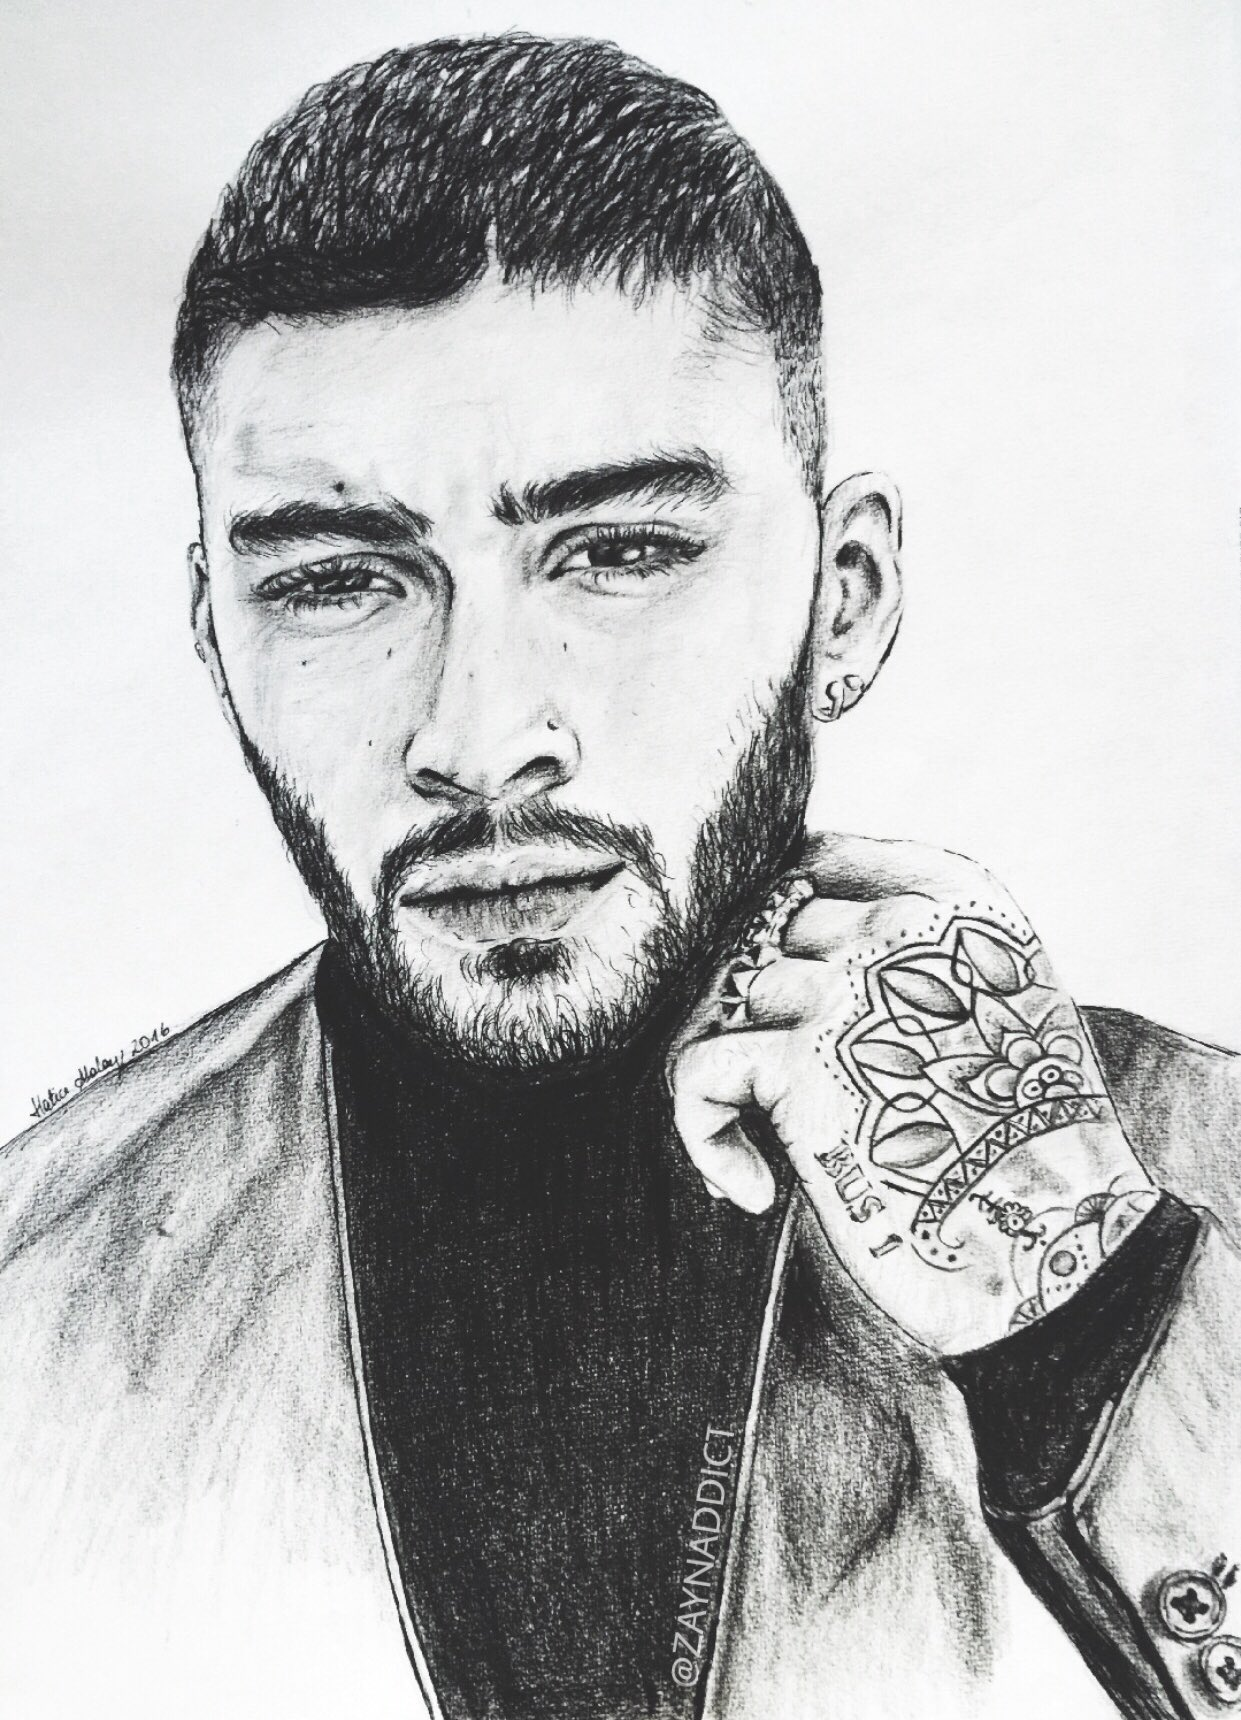 hatice on twitter quotlook at my new drawing zayn